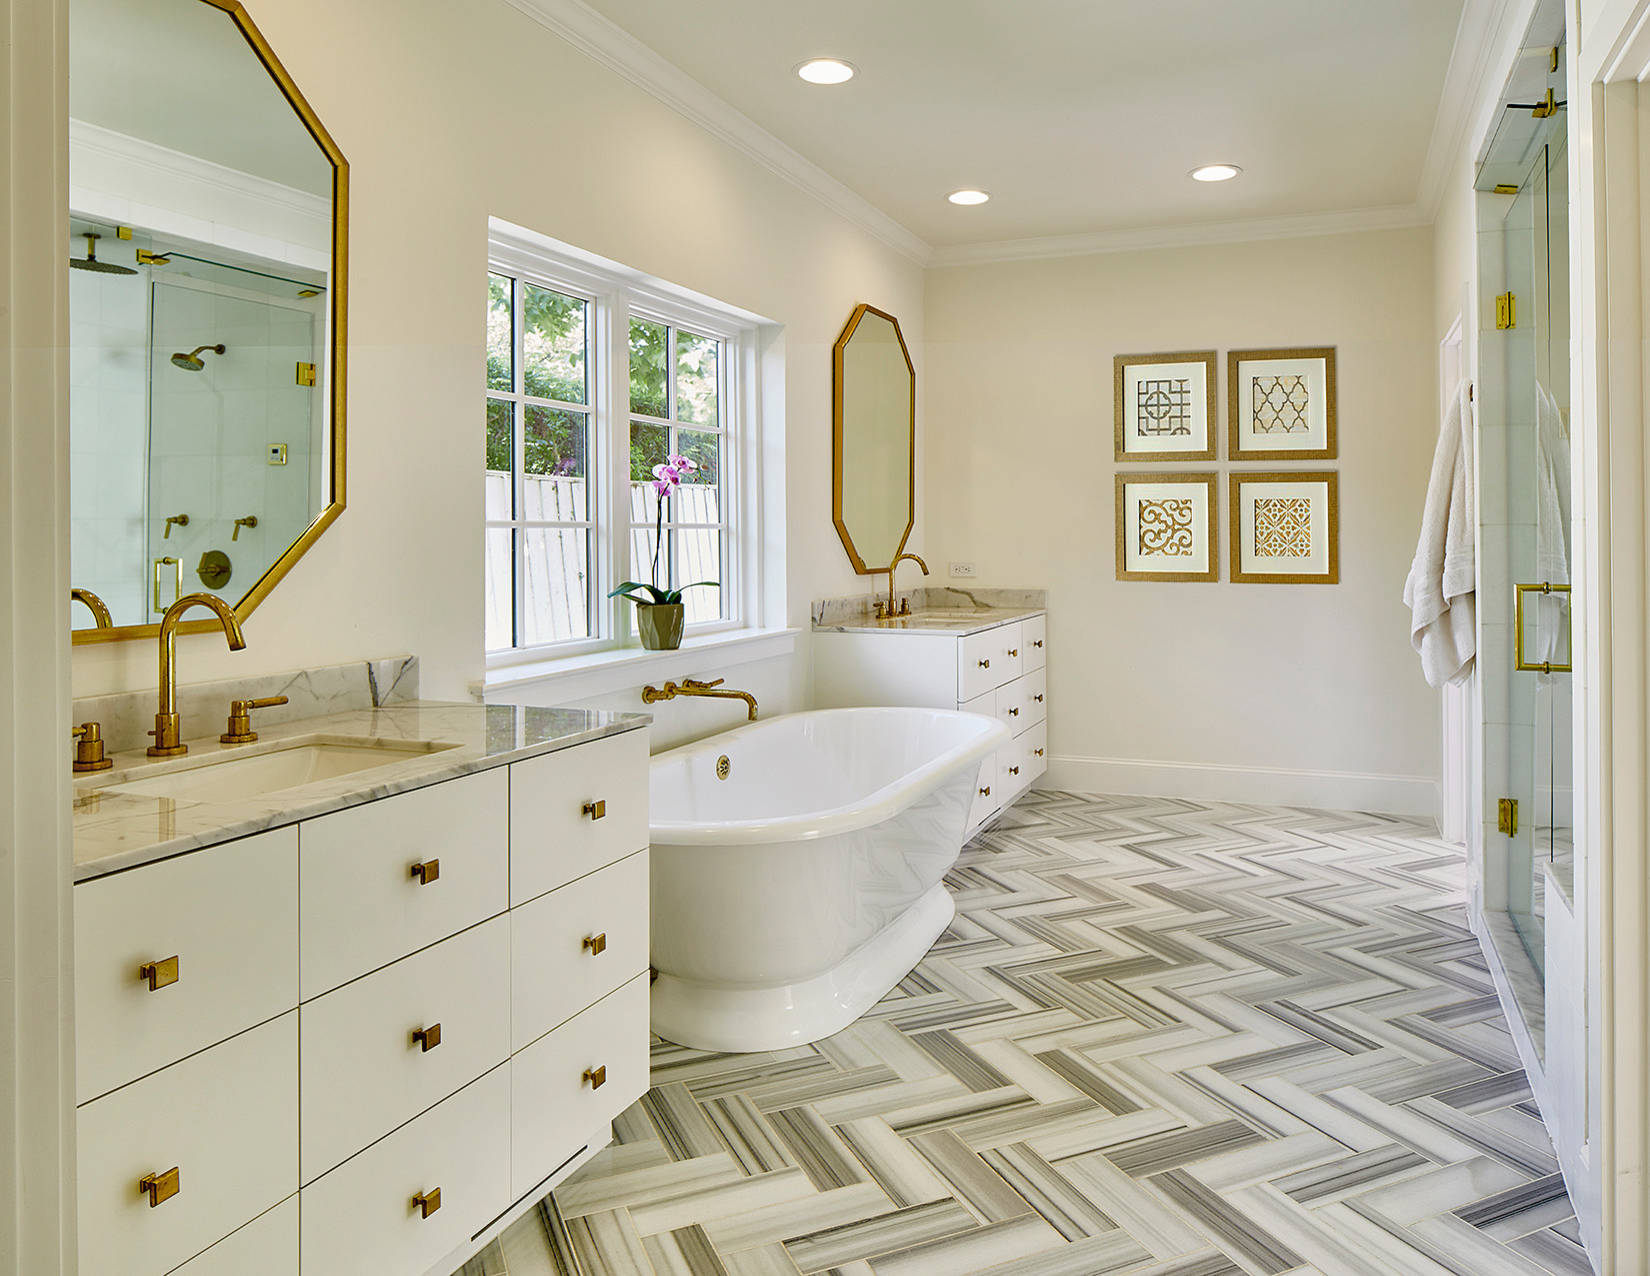 75 Beautiful Beige Marble Tile Bathroom Pictures Ideas December 2020 Houzz